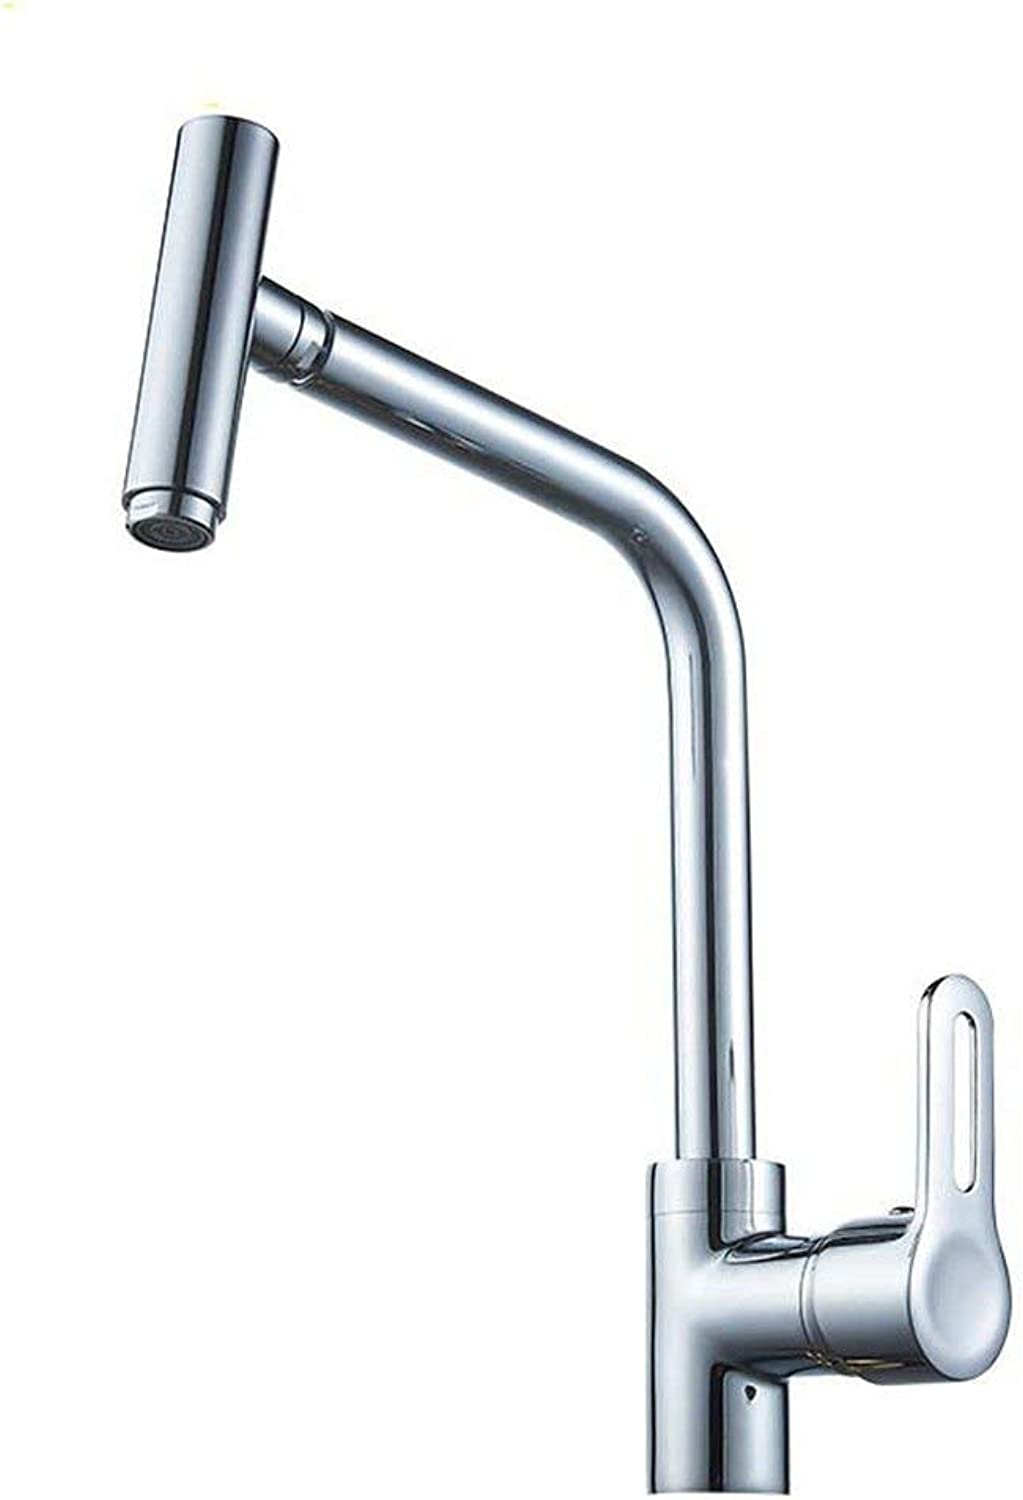 Oudan Kitchen Mixer faucets Solid Brass Kitchen Sink tap hot and Cold Sink Mixer Mixer taps 720 Degree Swivel spout Sink Faucet (color   -, Size   -)